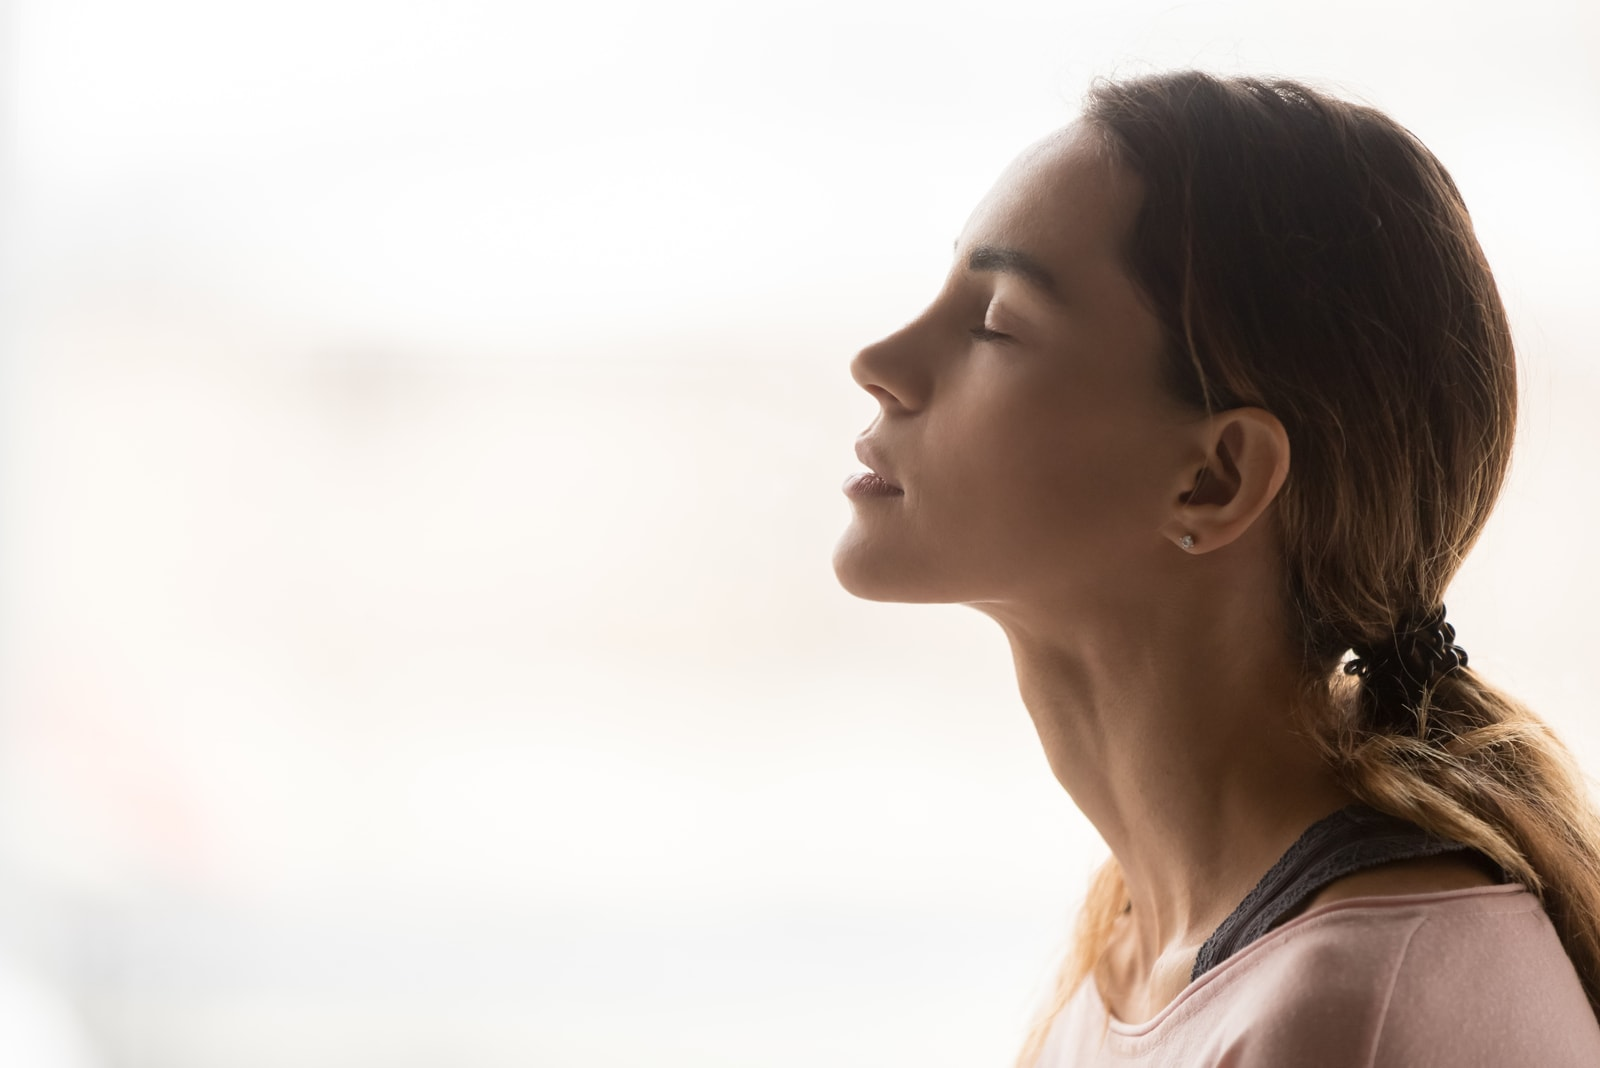 young woman breathing deeply